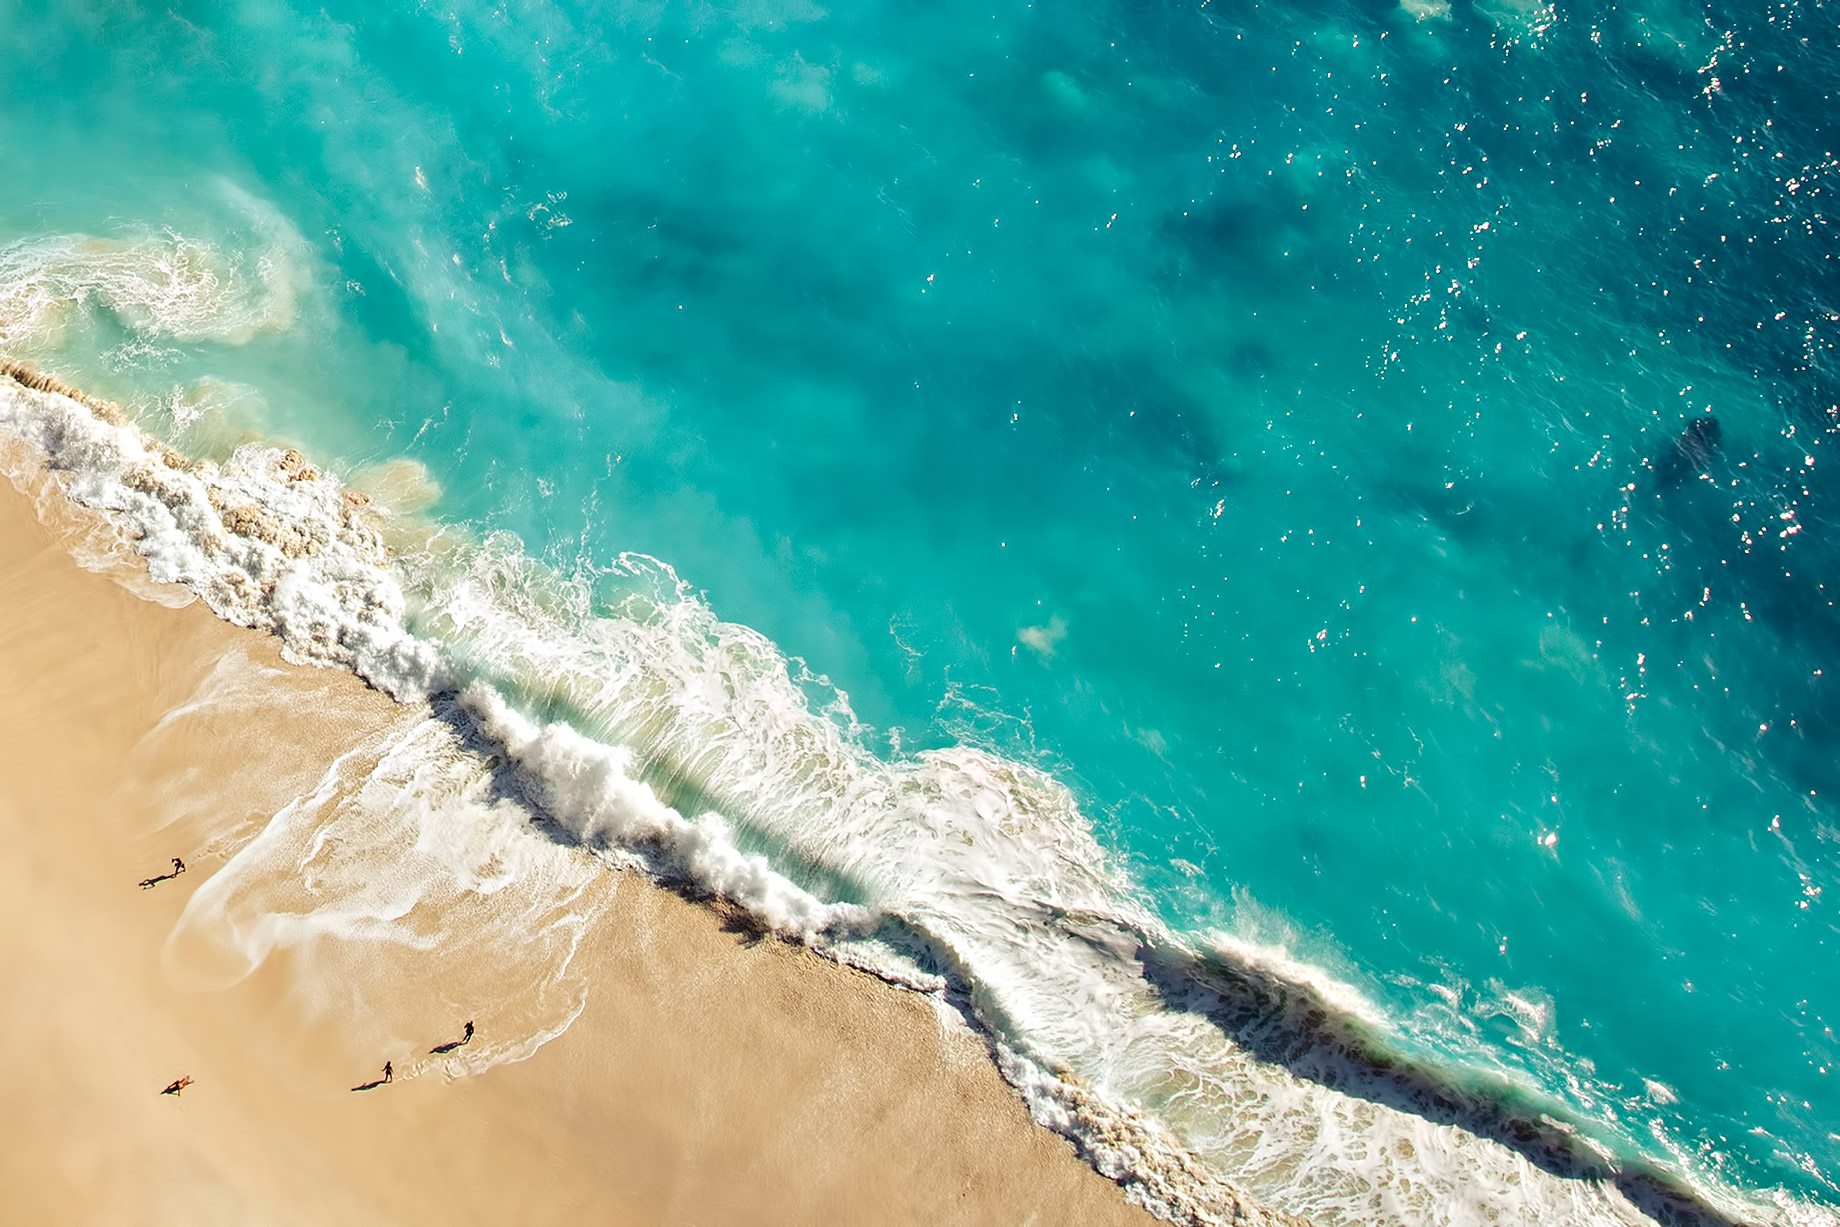 Indulge in exciting water activities at the beach - Bali, Indonesia